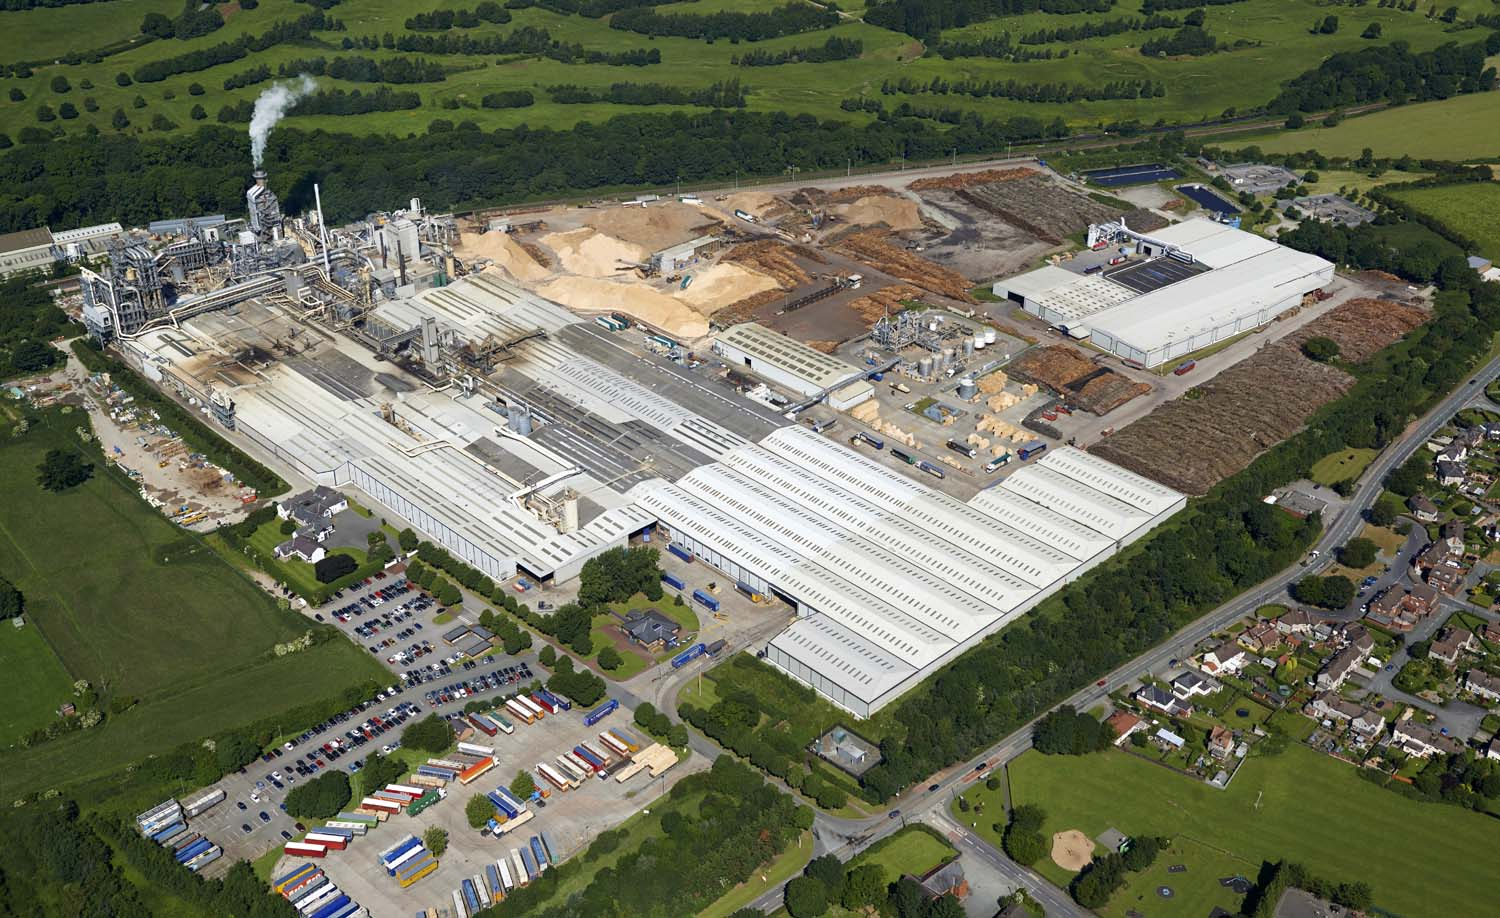 Wood Processing Site, North Wales